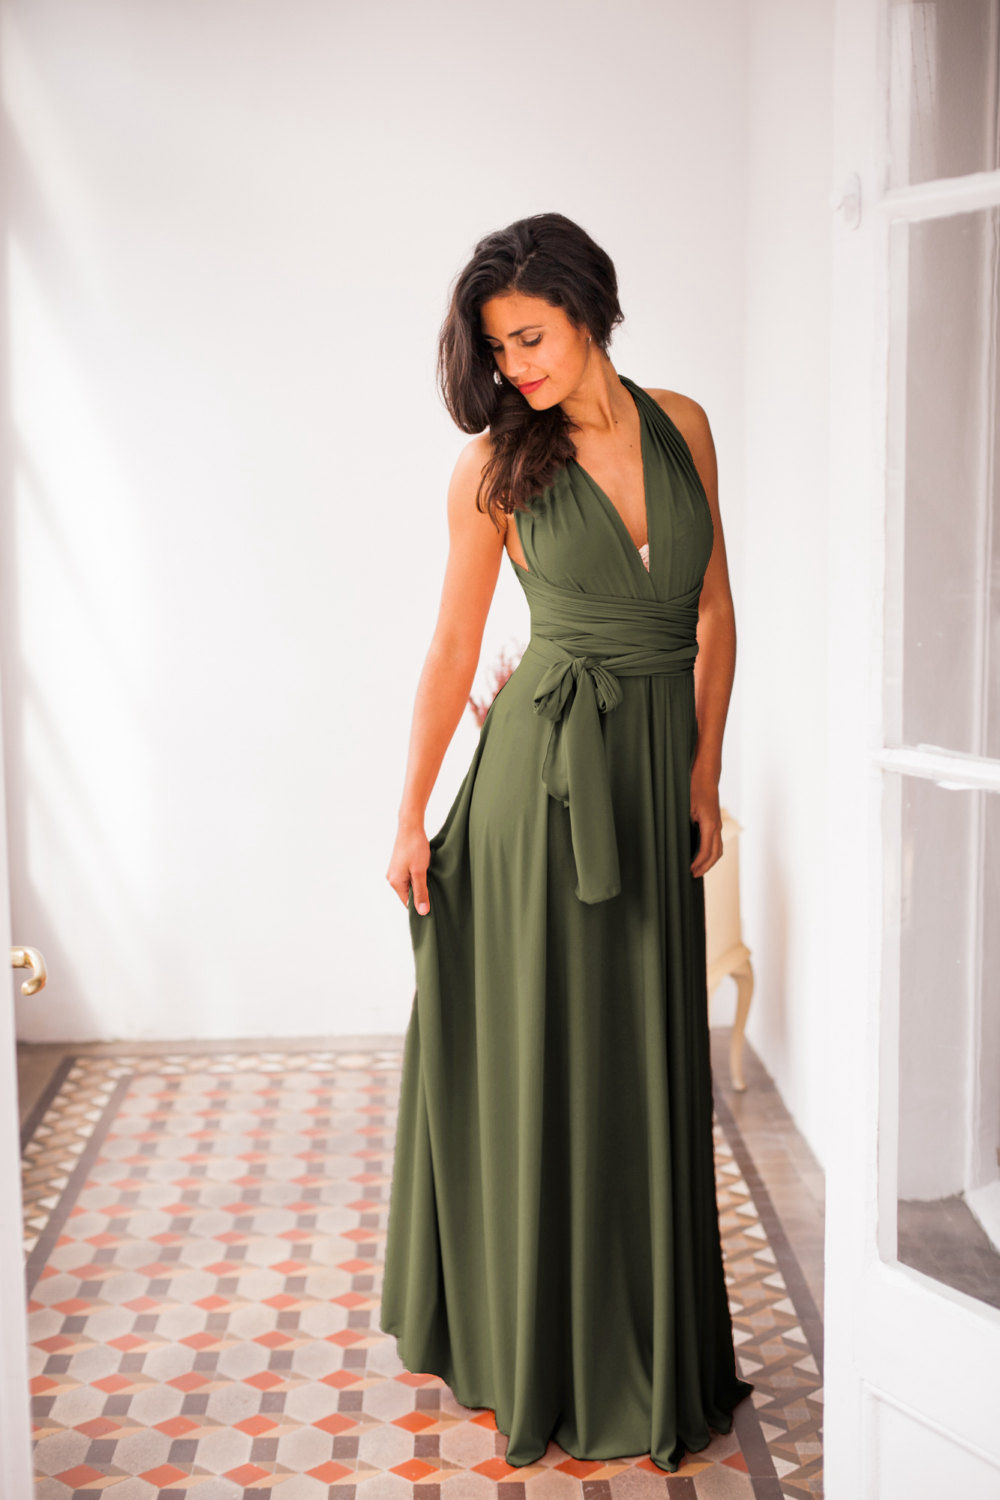 Olive Green Infinity Dress Dark Green Bridesmaid Dress Dark Sage Green Dress Long Dark Green ...